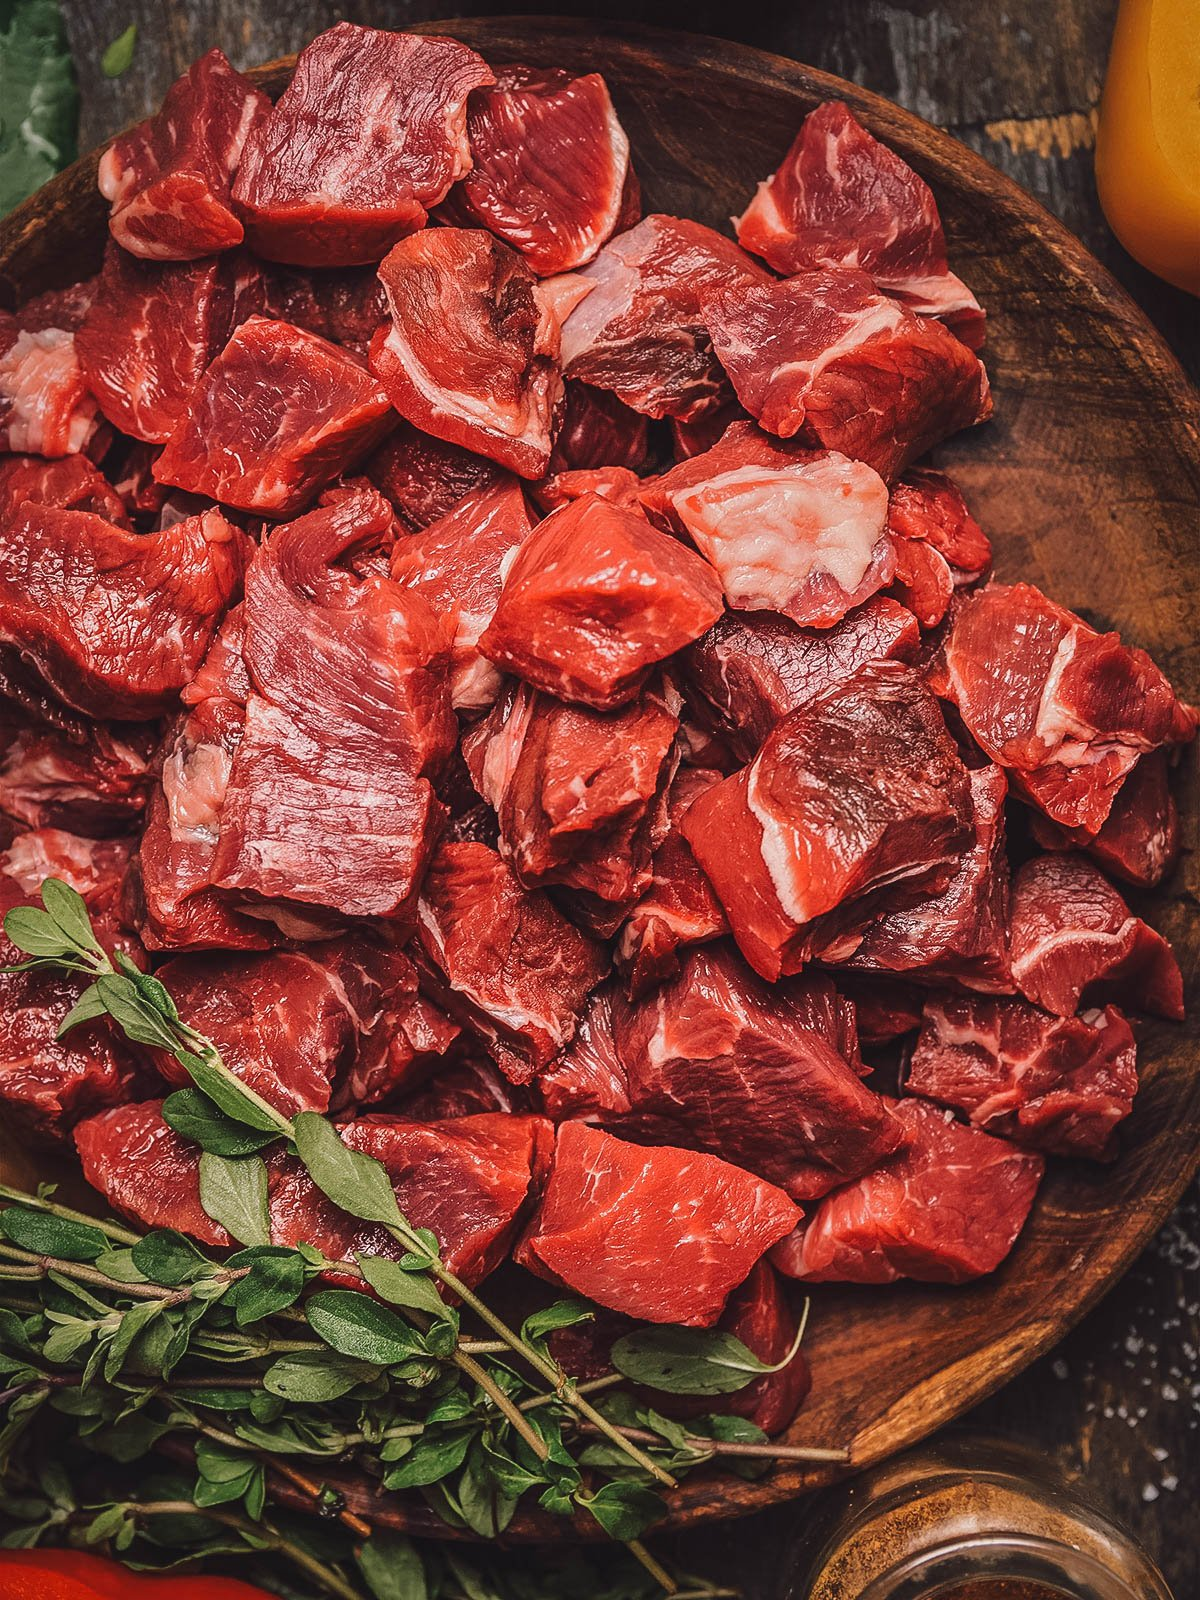 Tere siga or cubes of raw red meat